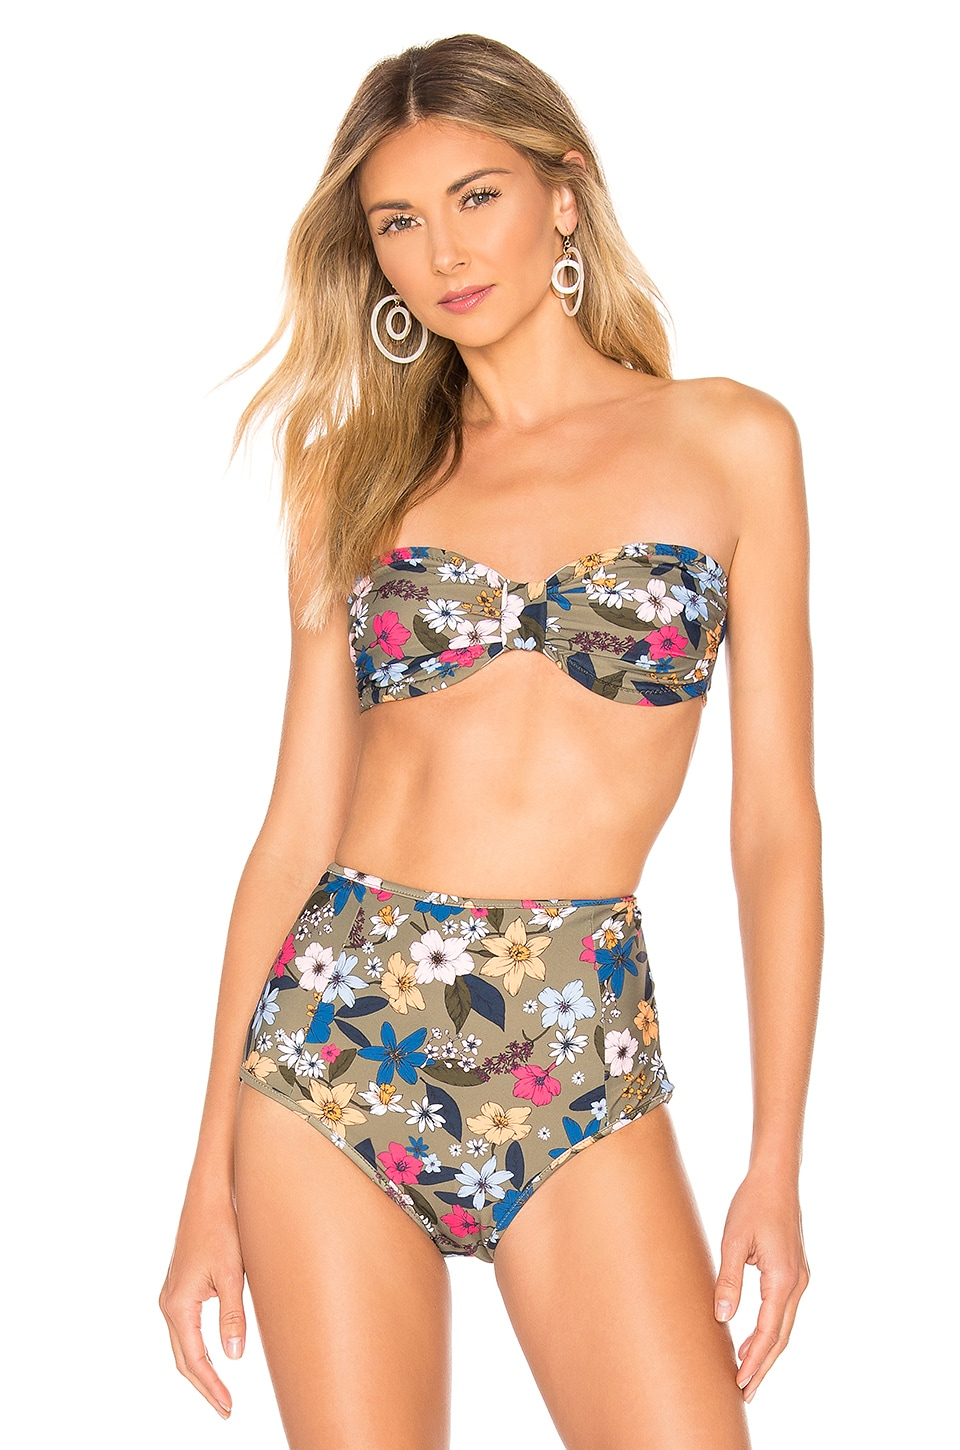 Shoshanna Knot Front Bandeau in Punchy Floral